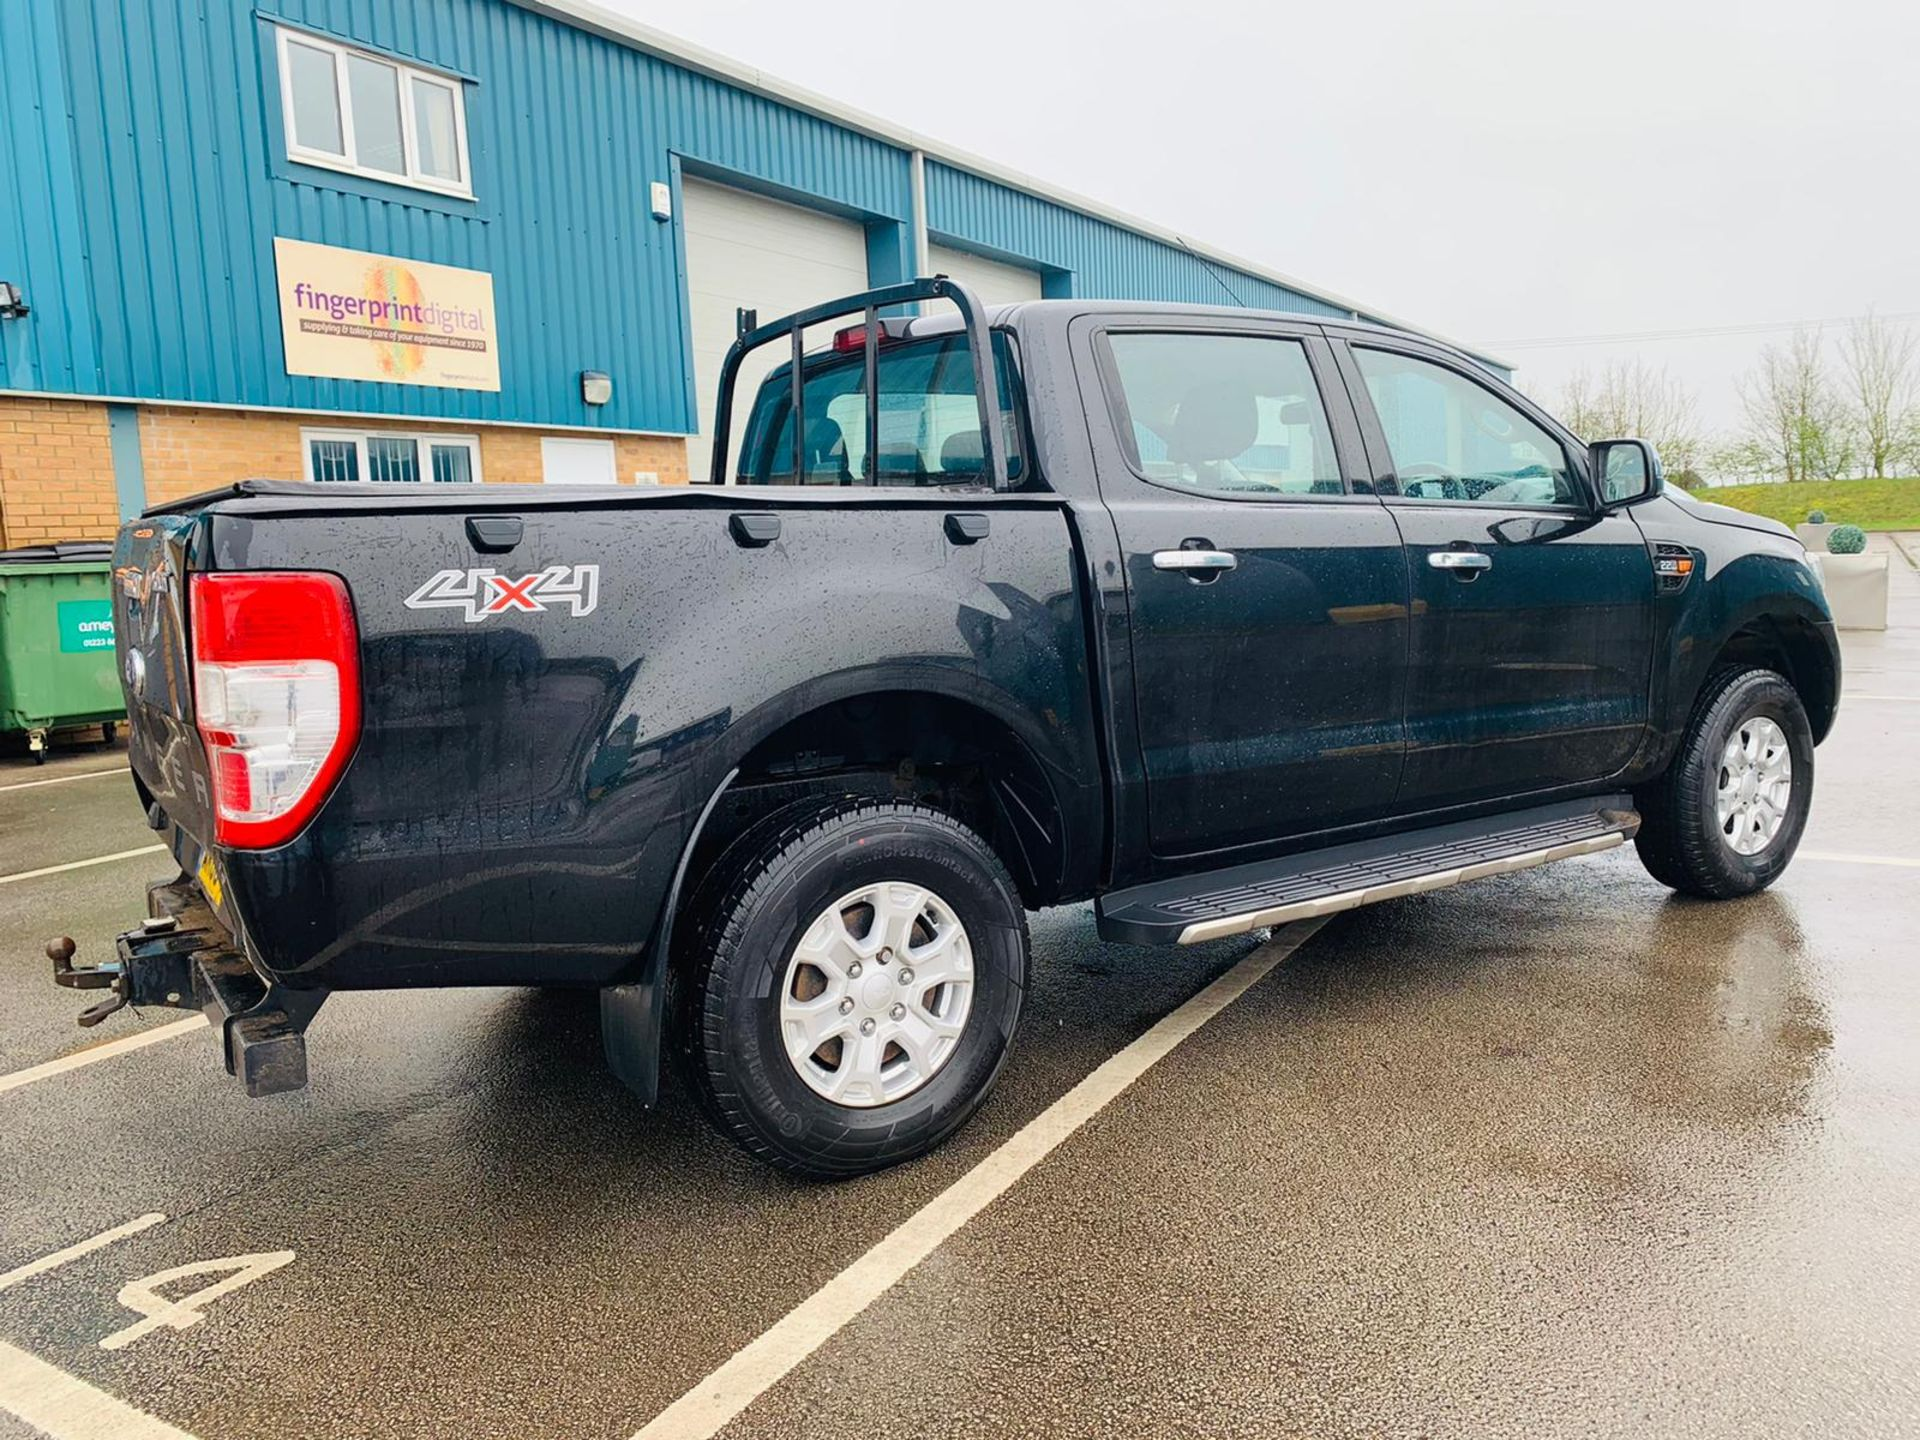 Ford Ranger 2.2 TDCI XLT 4x4 Double Cab - 2017 Model - Euro 6 - ULEZ Compliant - Service History - Image 6 of 24